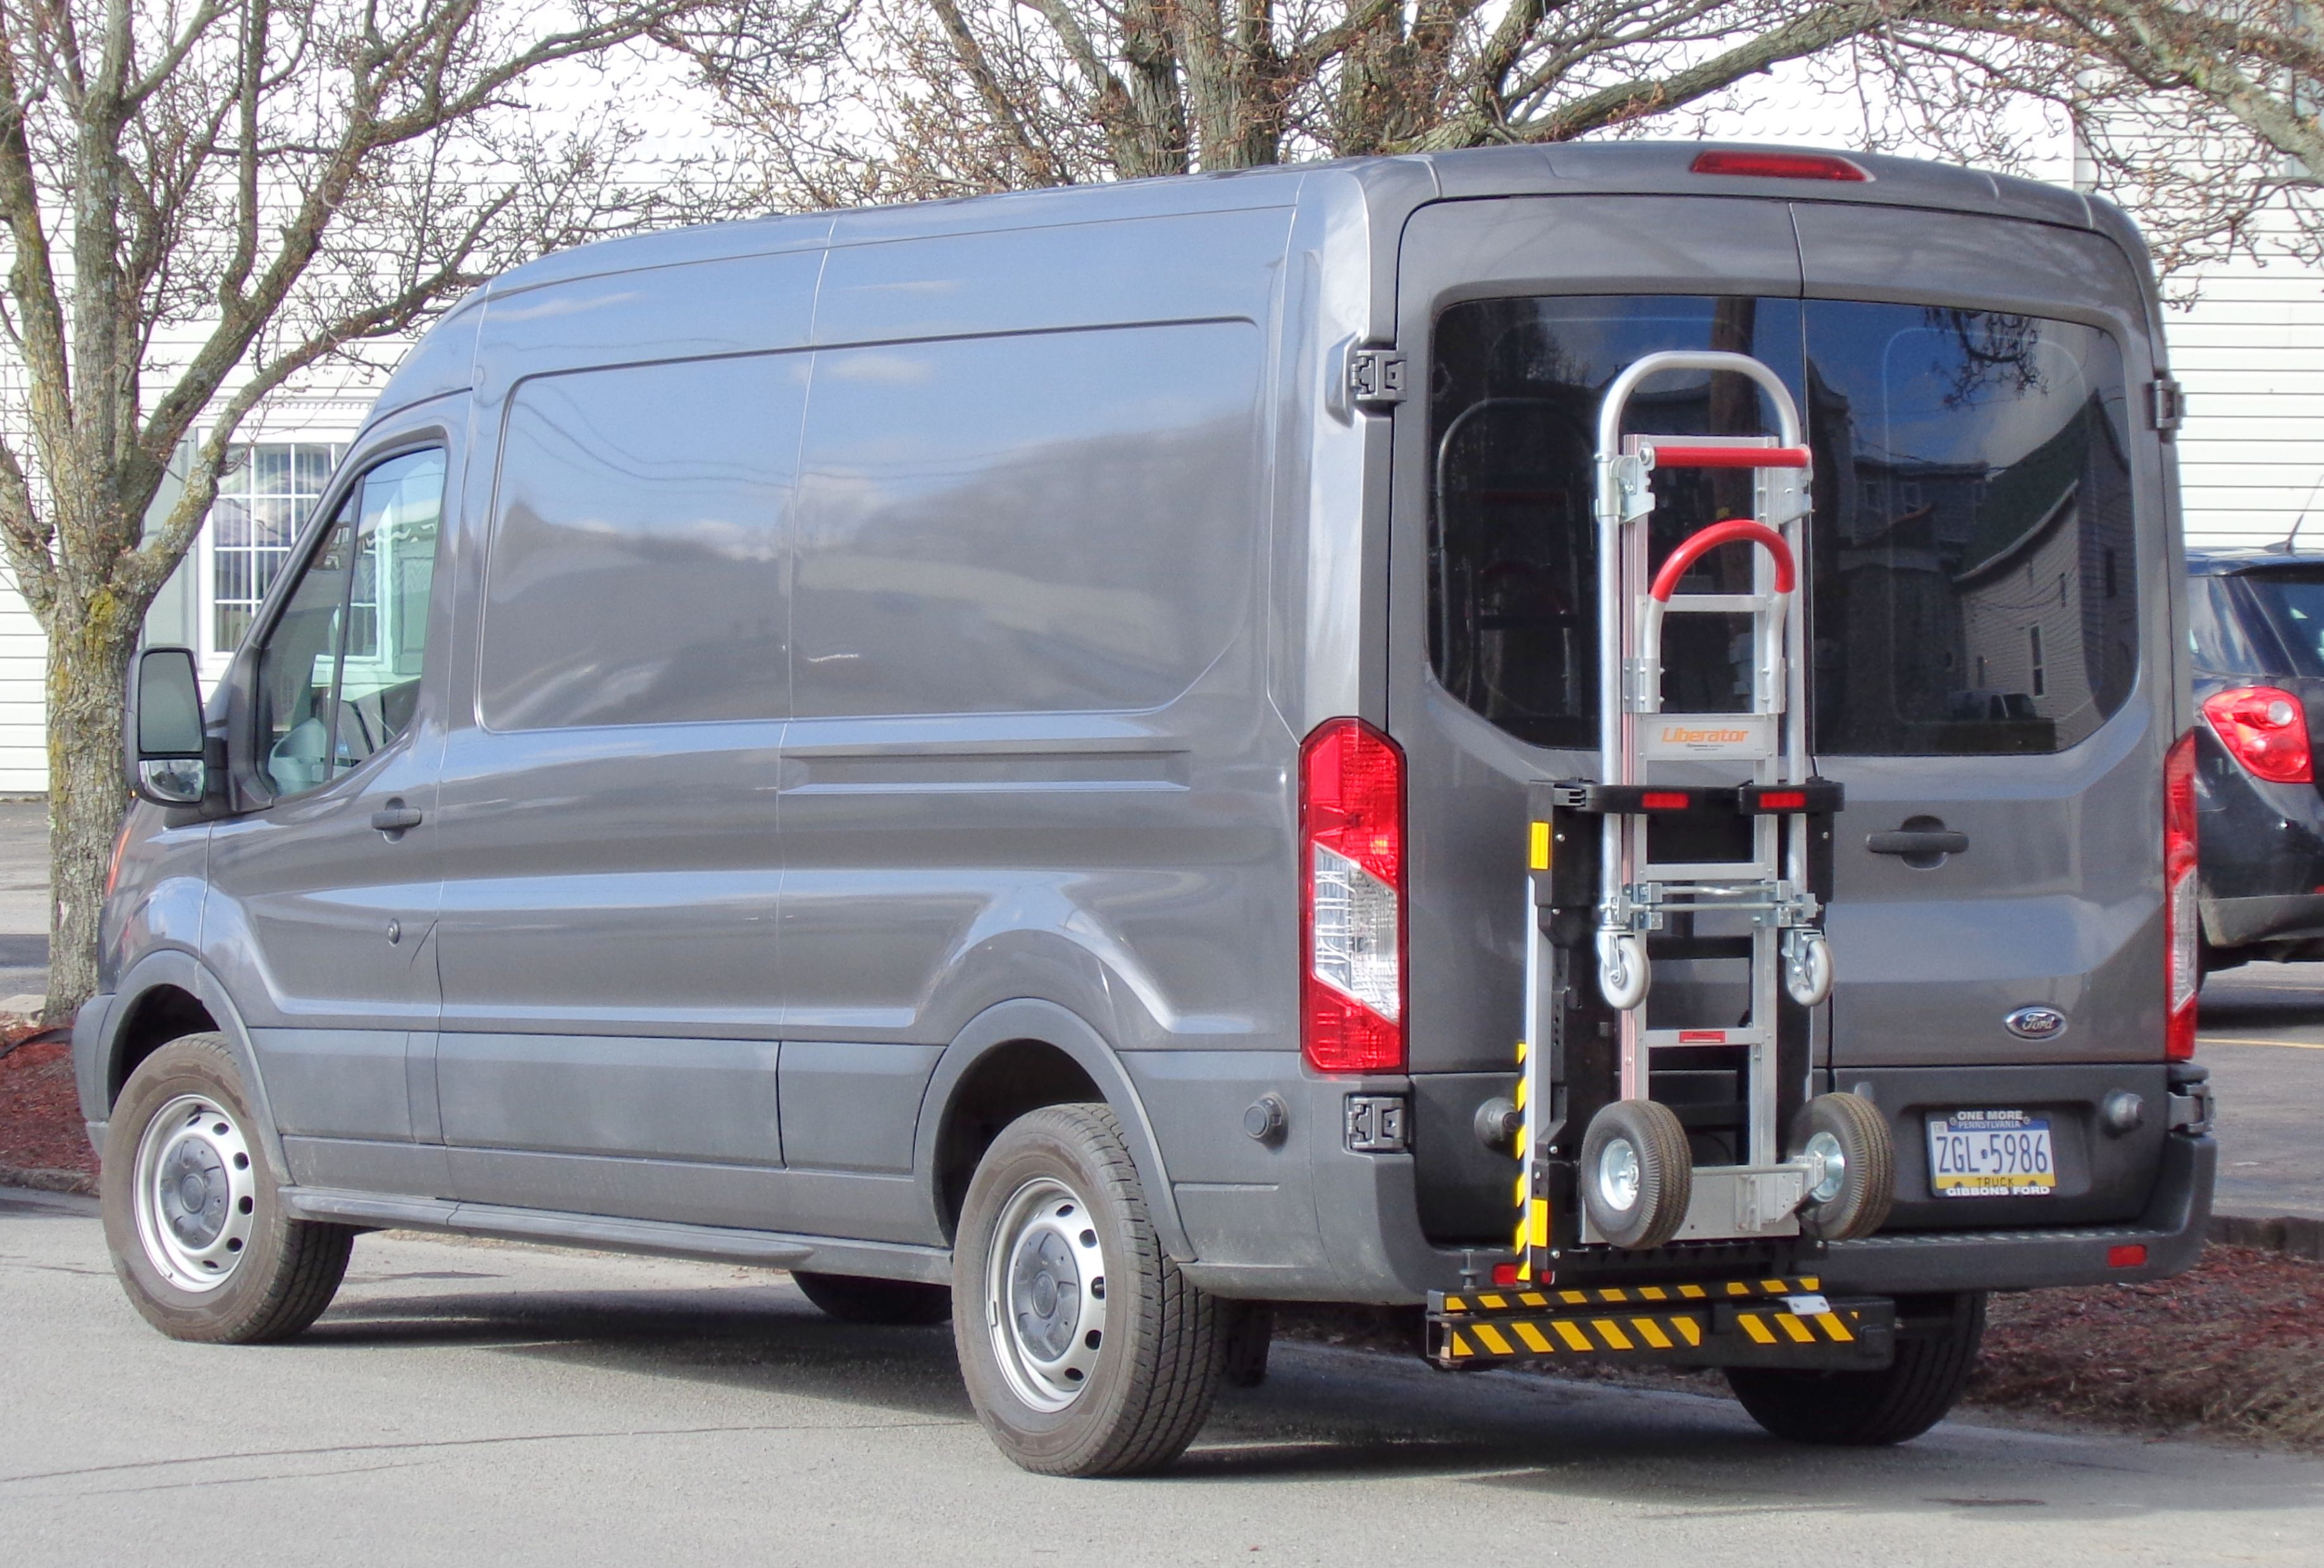 dual ford low research swb transit groovecar van doors race sliding extended large side high red cargo w lwb composite passenger roof